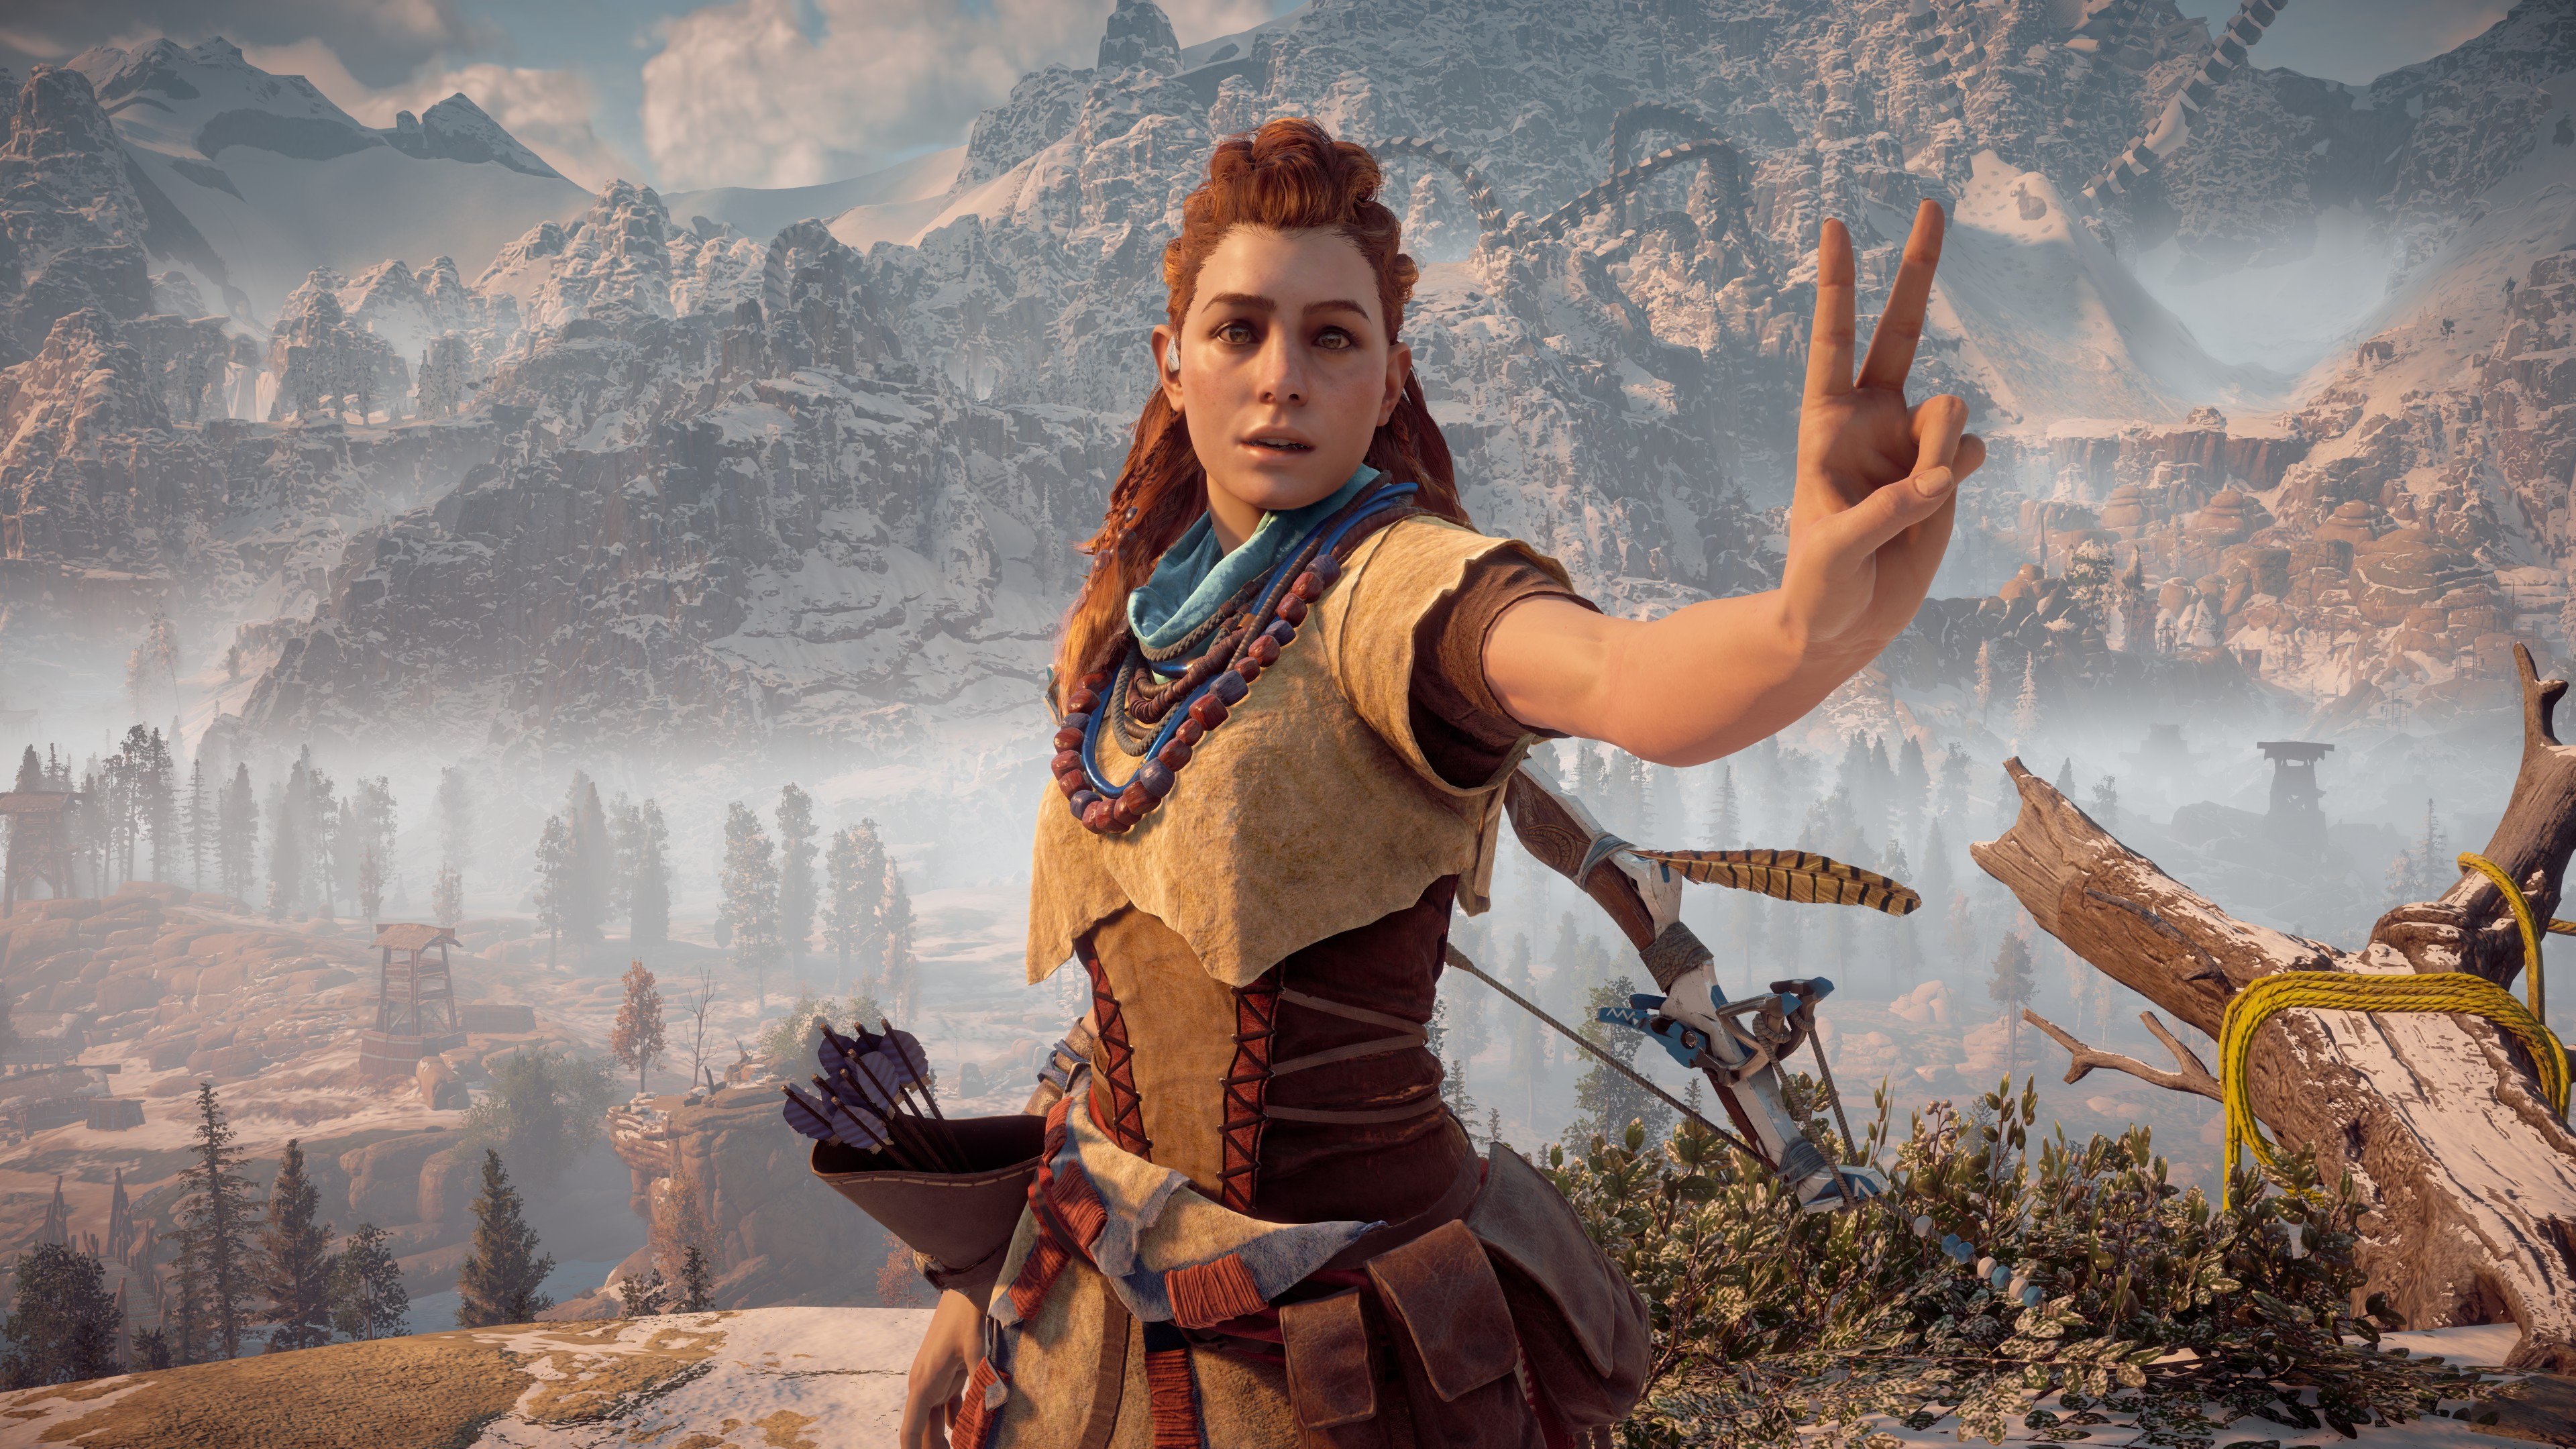 A screenshot of Aloy from Horizon Zero Dawn doing the peace sign in the game's photo mode.